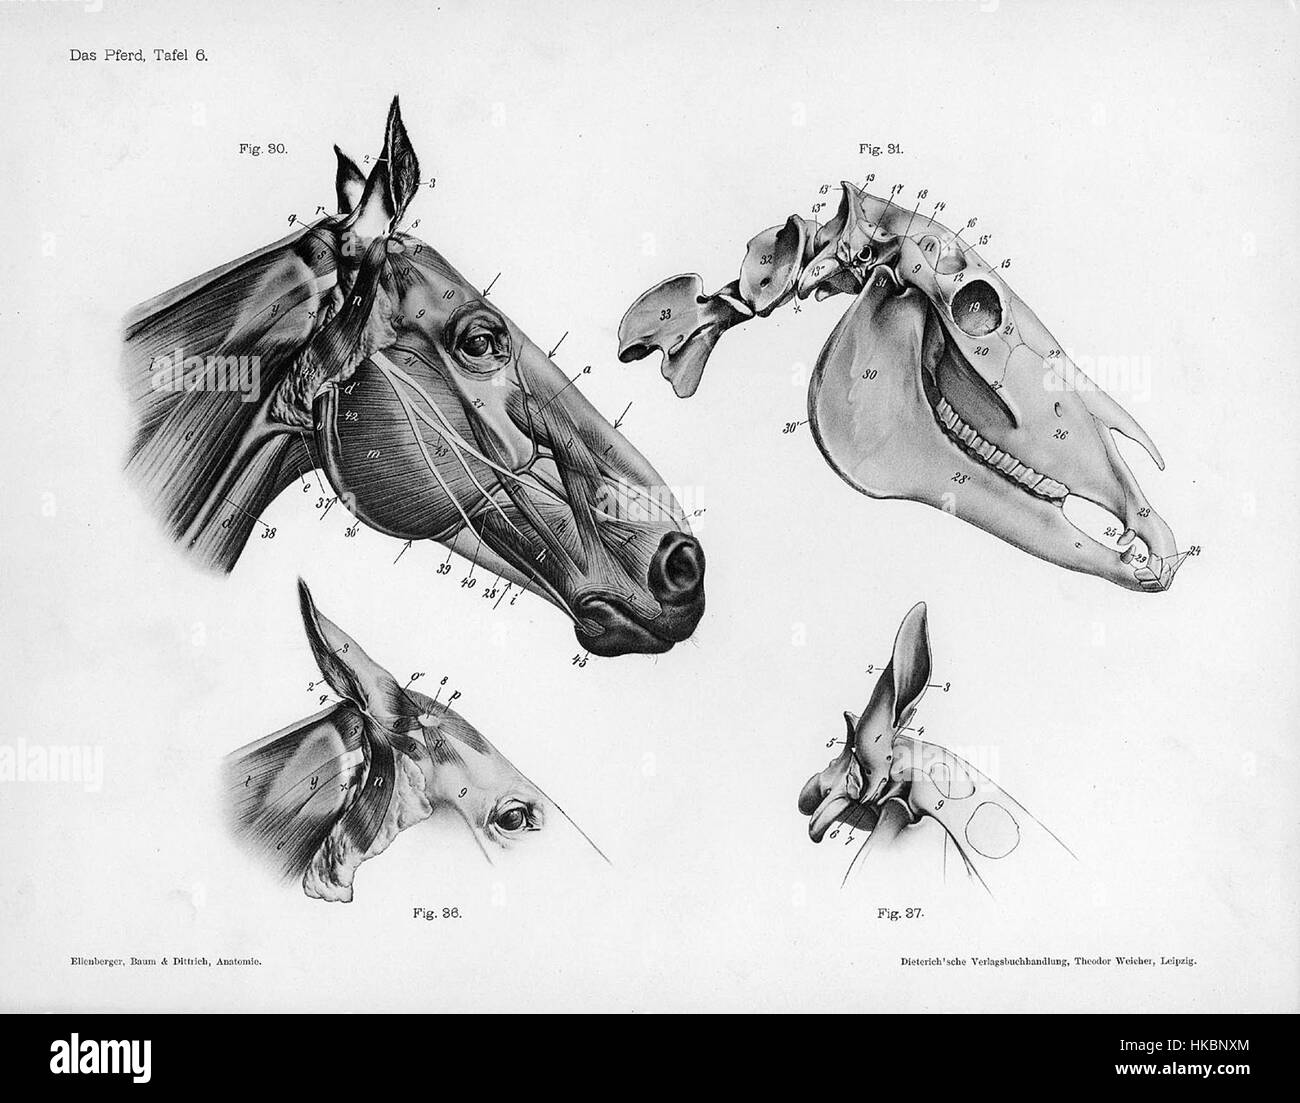 Horse Anatomy Drawing High Resolution Stock Photography And Images Alamy